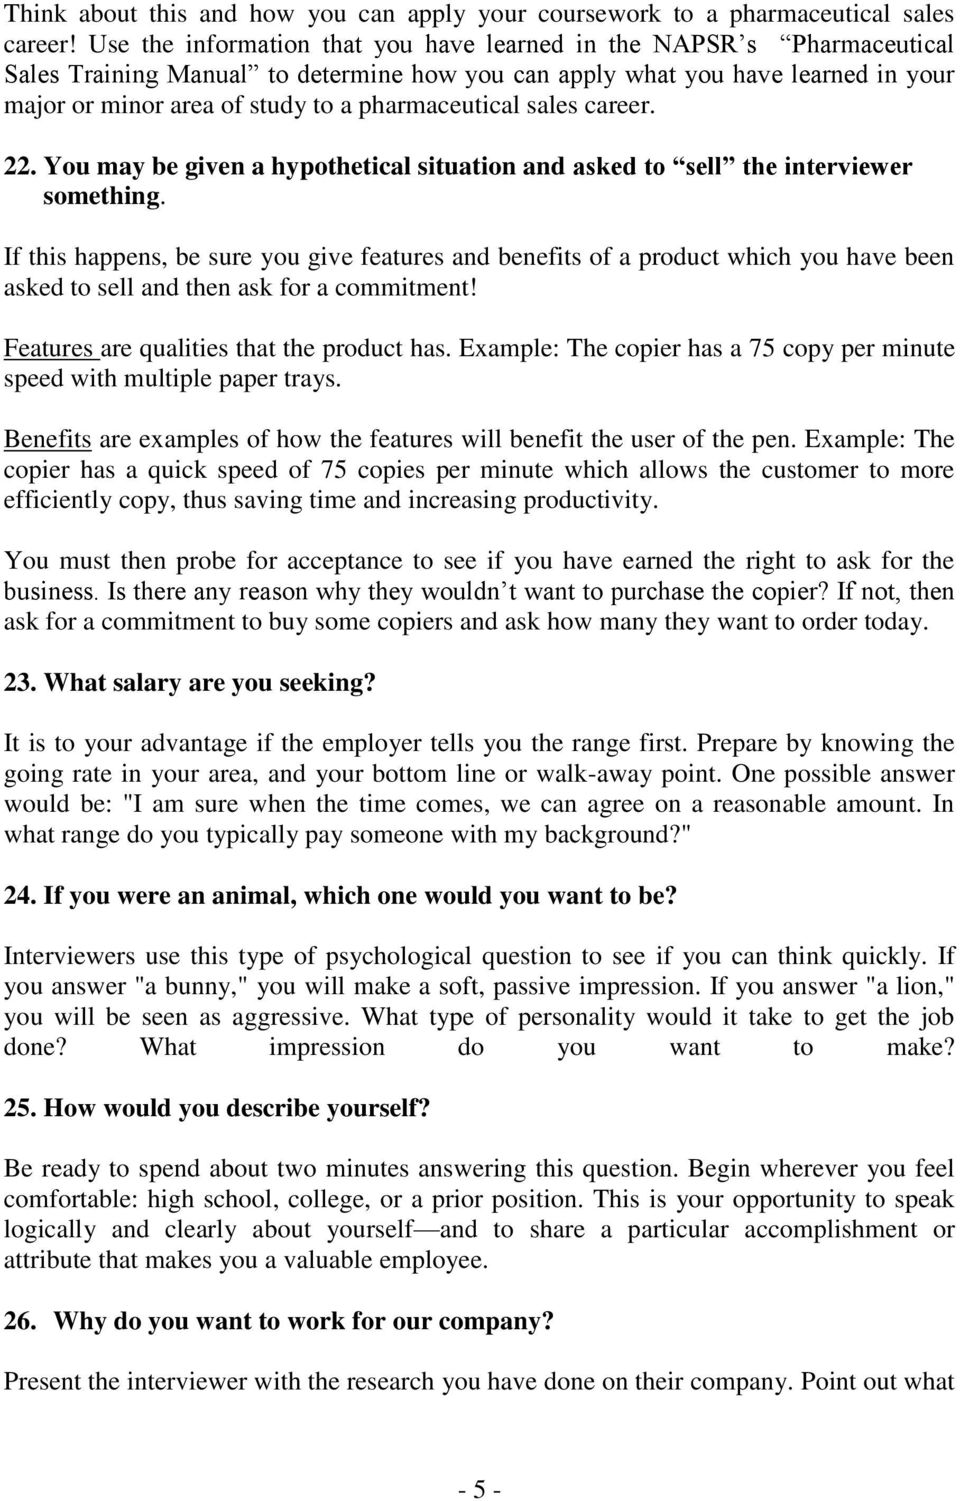 interview questions and answers pdf pharmaceutical s career 22 you be given a hypothetical situation and asked to